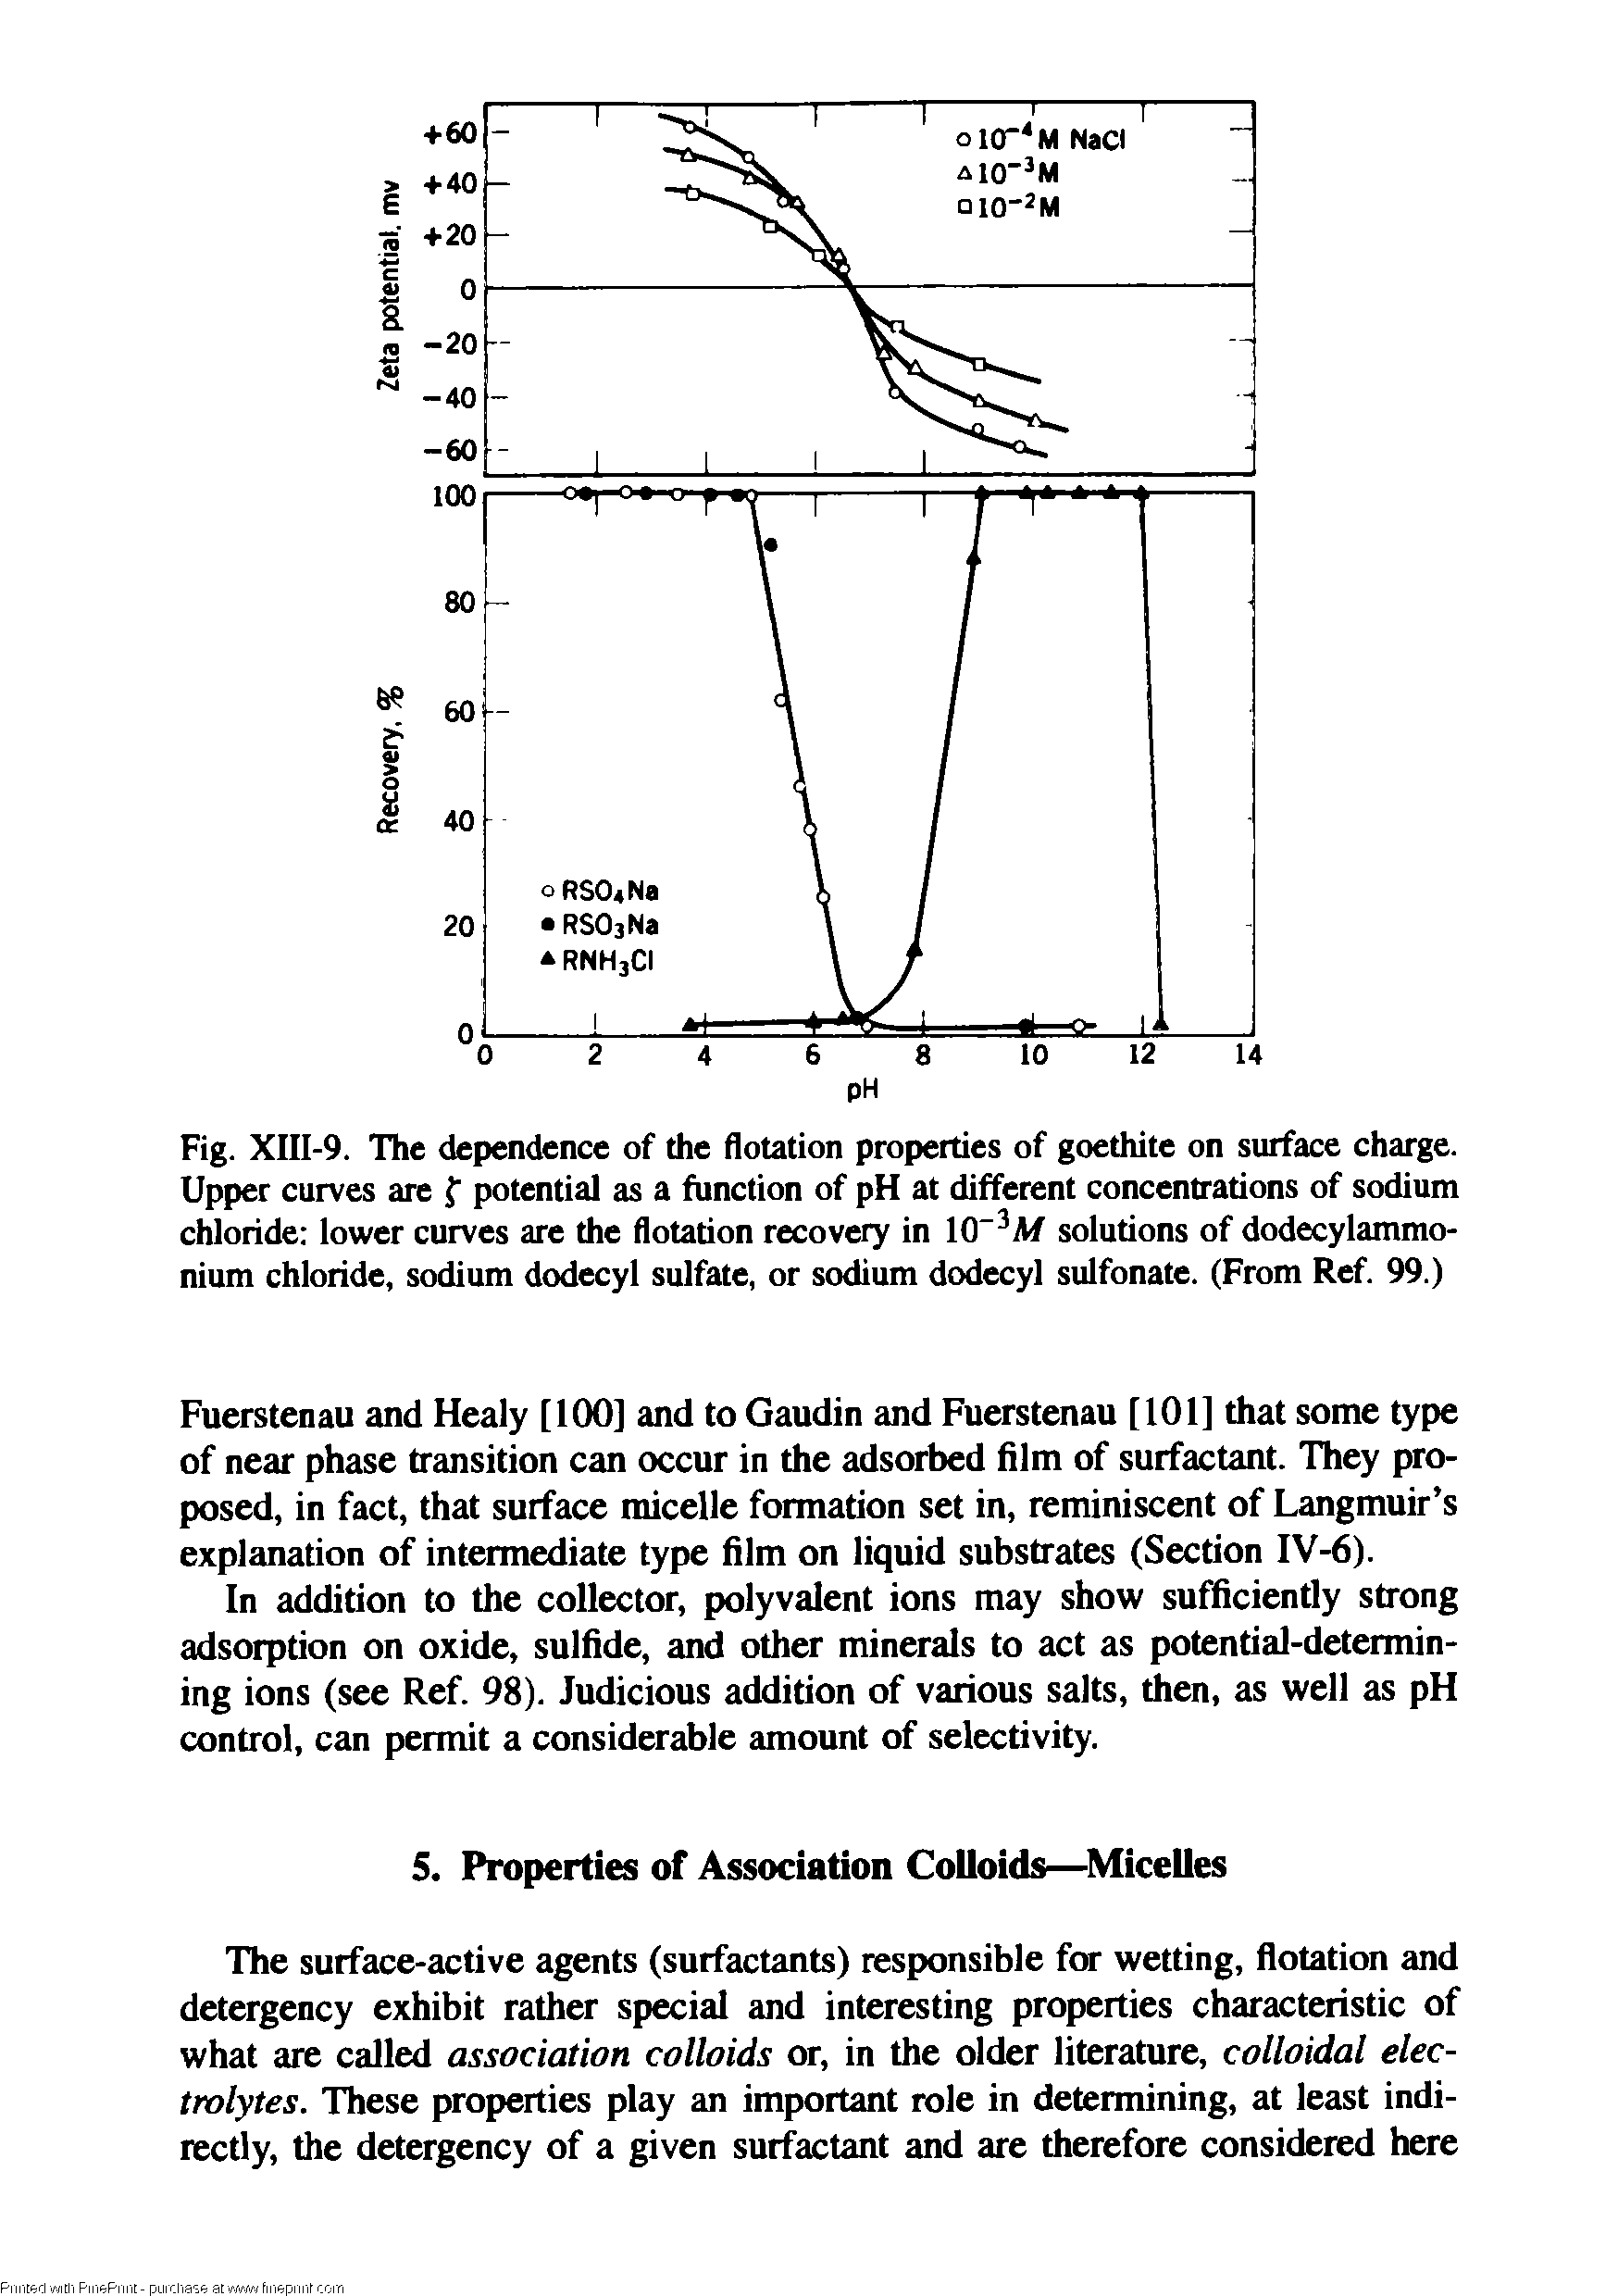 Fig. XIII-9. The dependence of the flotation properties of goethite on surface charge. Upper curves are potential as a function of pH at different concentrations of sodium chloride lower curves are the flotation recovery in 10 M solutions of dodecylammo-nium chloride, sodium dodecyl sulfate, or sodium dodecyl sulfonate. (From Ref. 99.)...